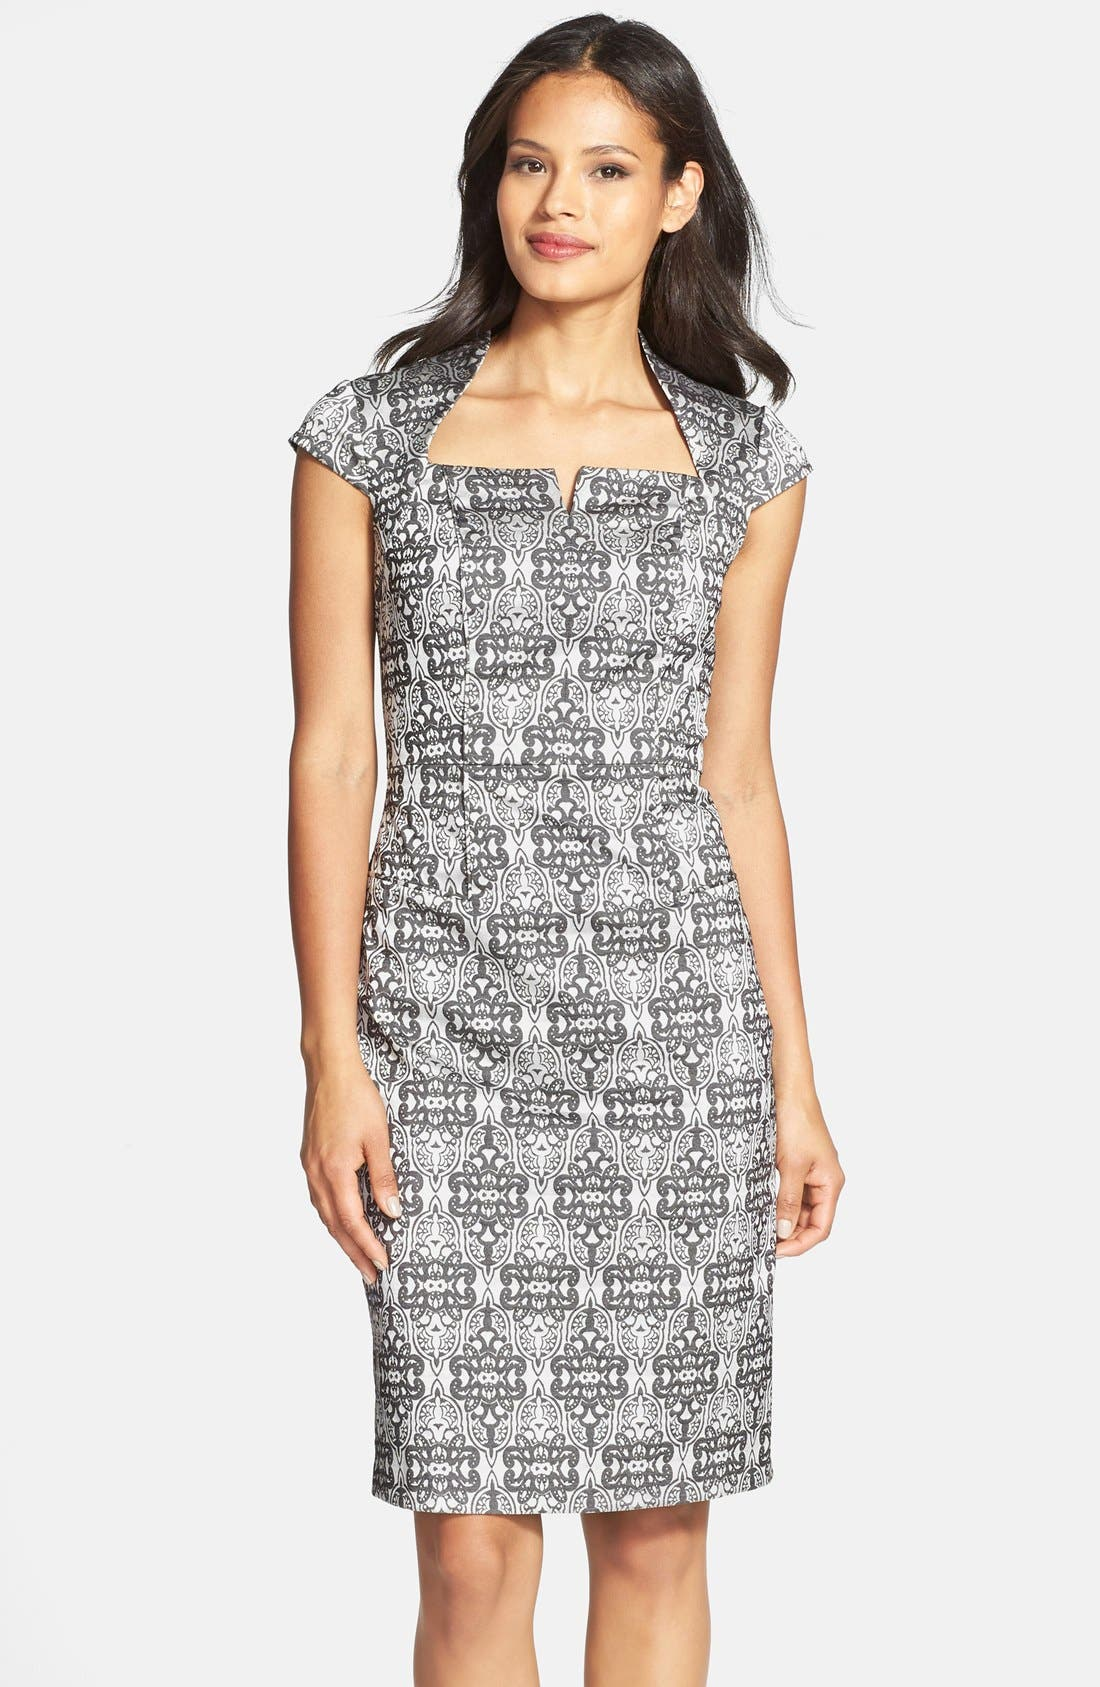 Alternate Image 1 Selected - Adrianna Papell Cap Sleeve Print Sheath Dress (Regular & Petite)